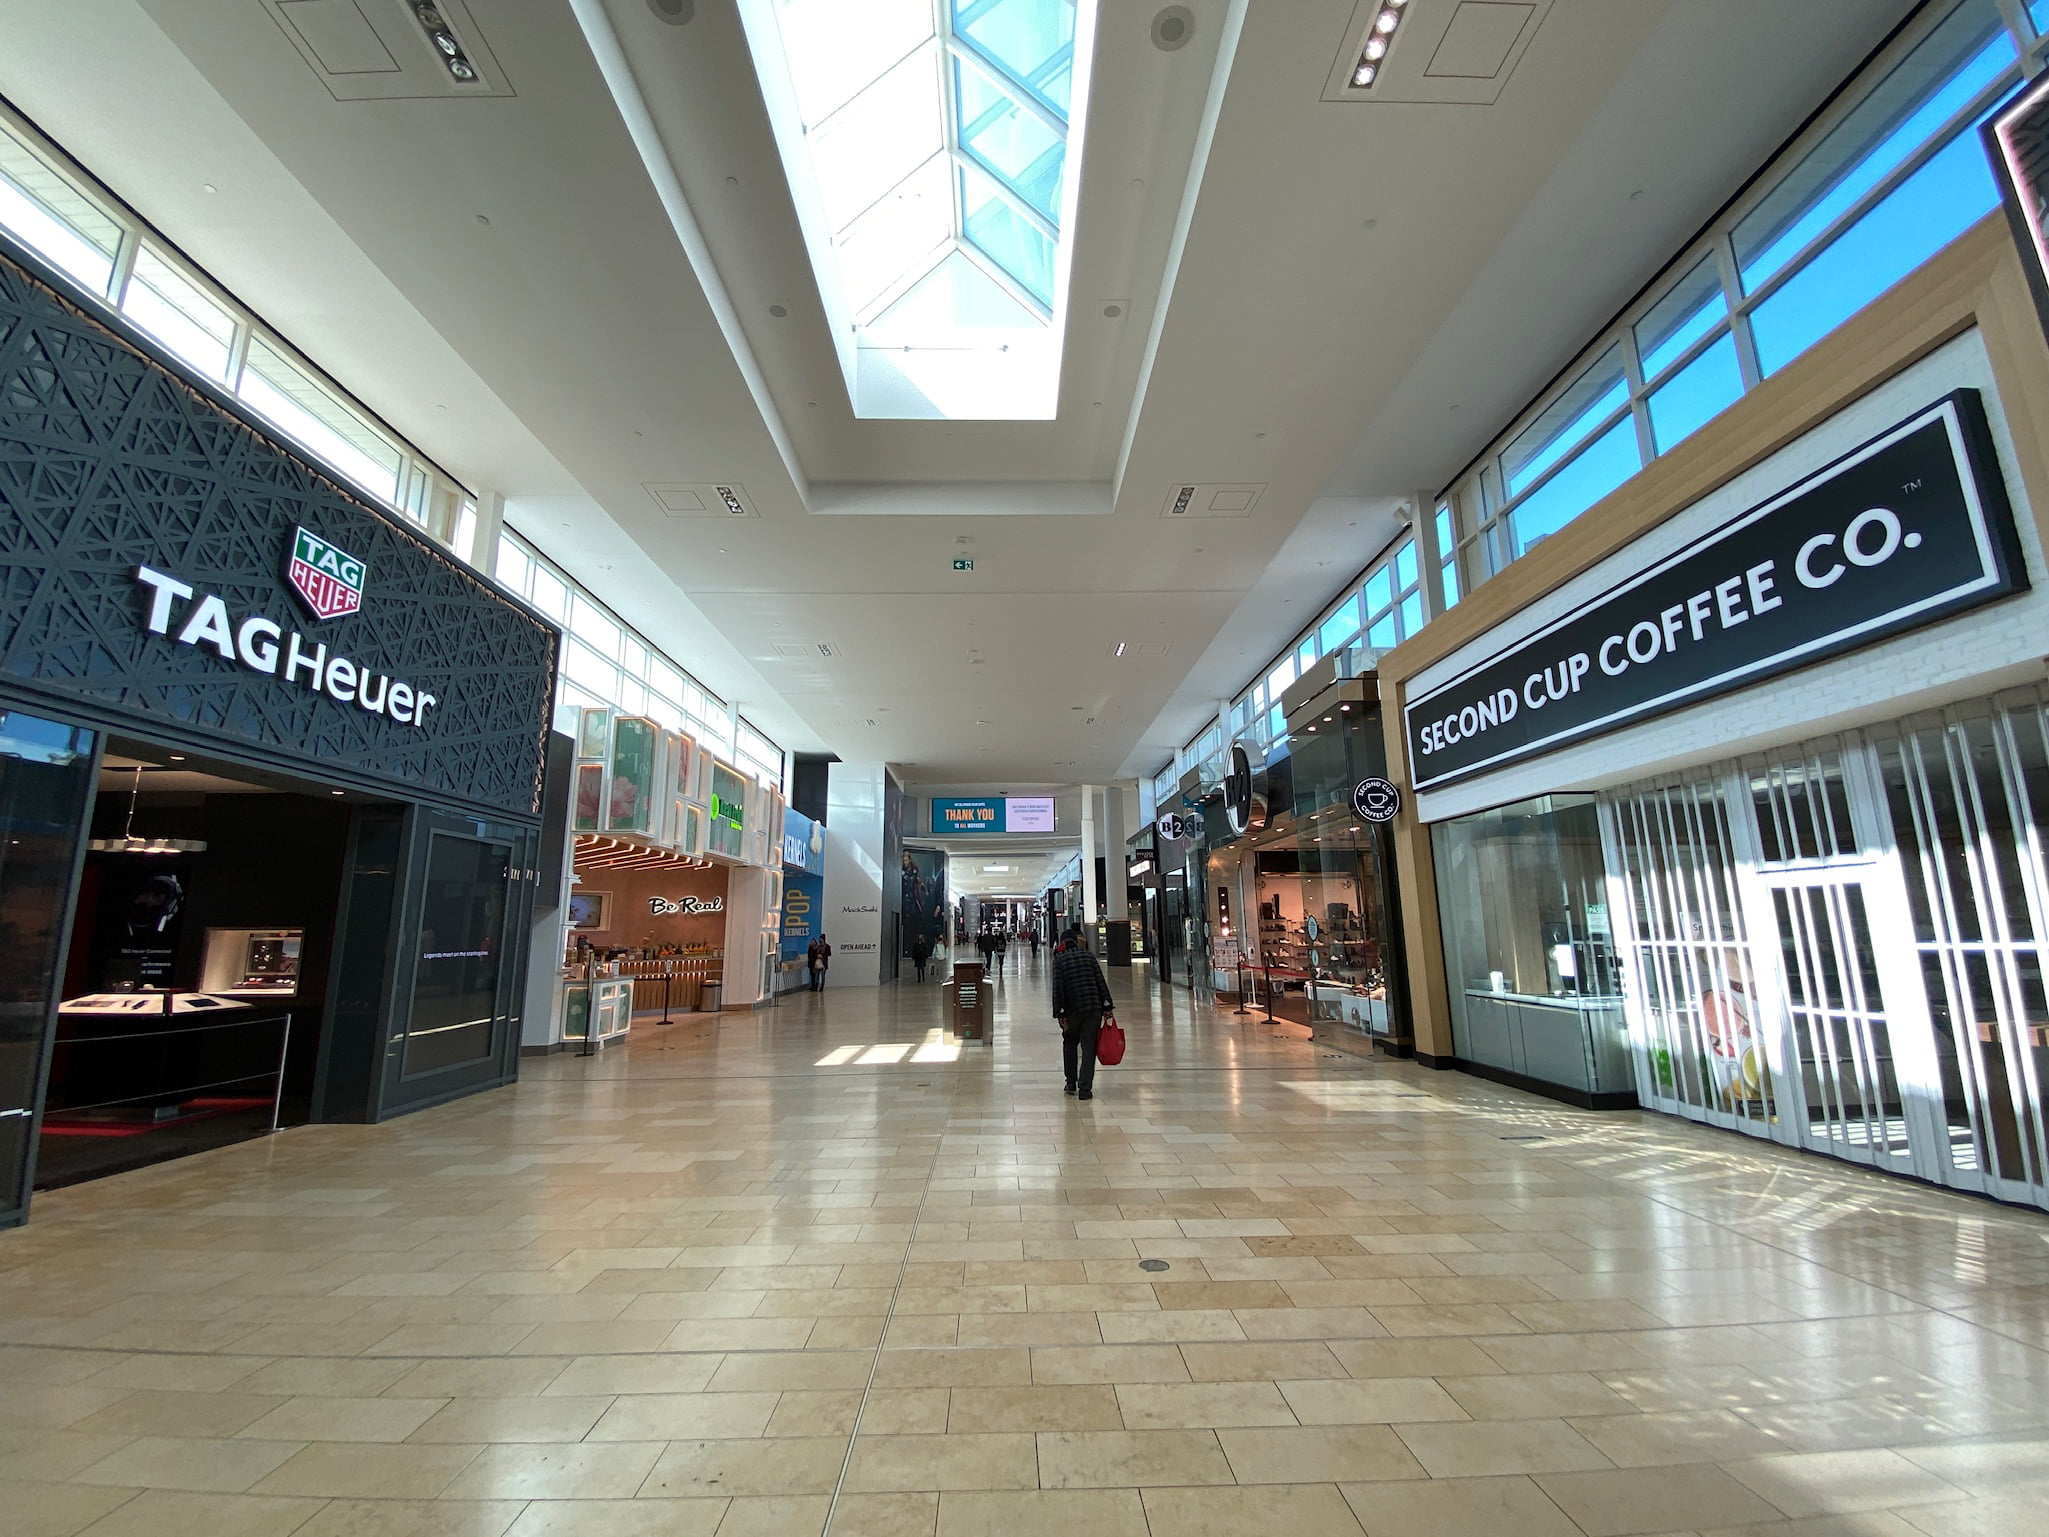 Tag Heuer and Second Cup Coffee at Yorkdale